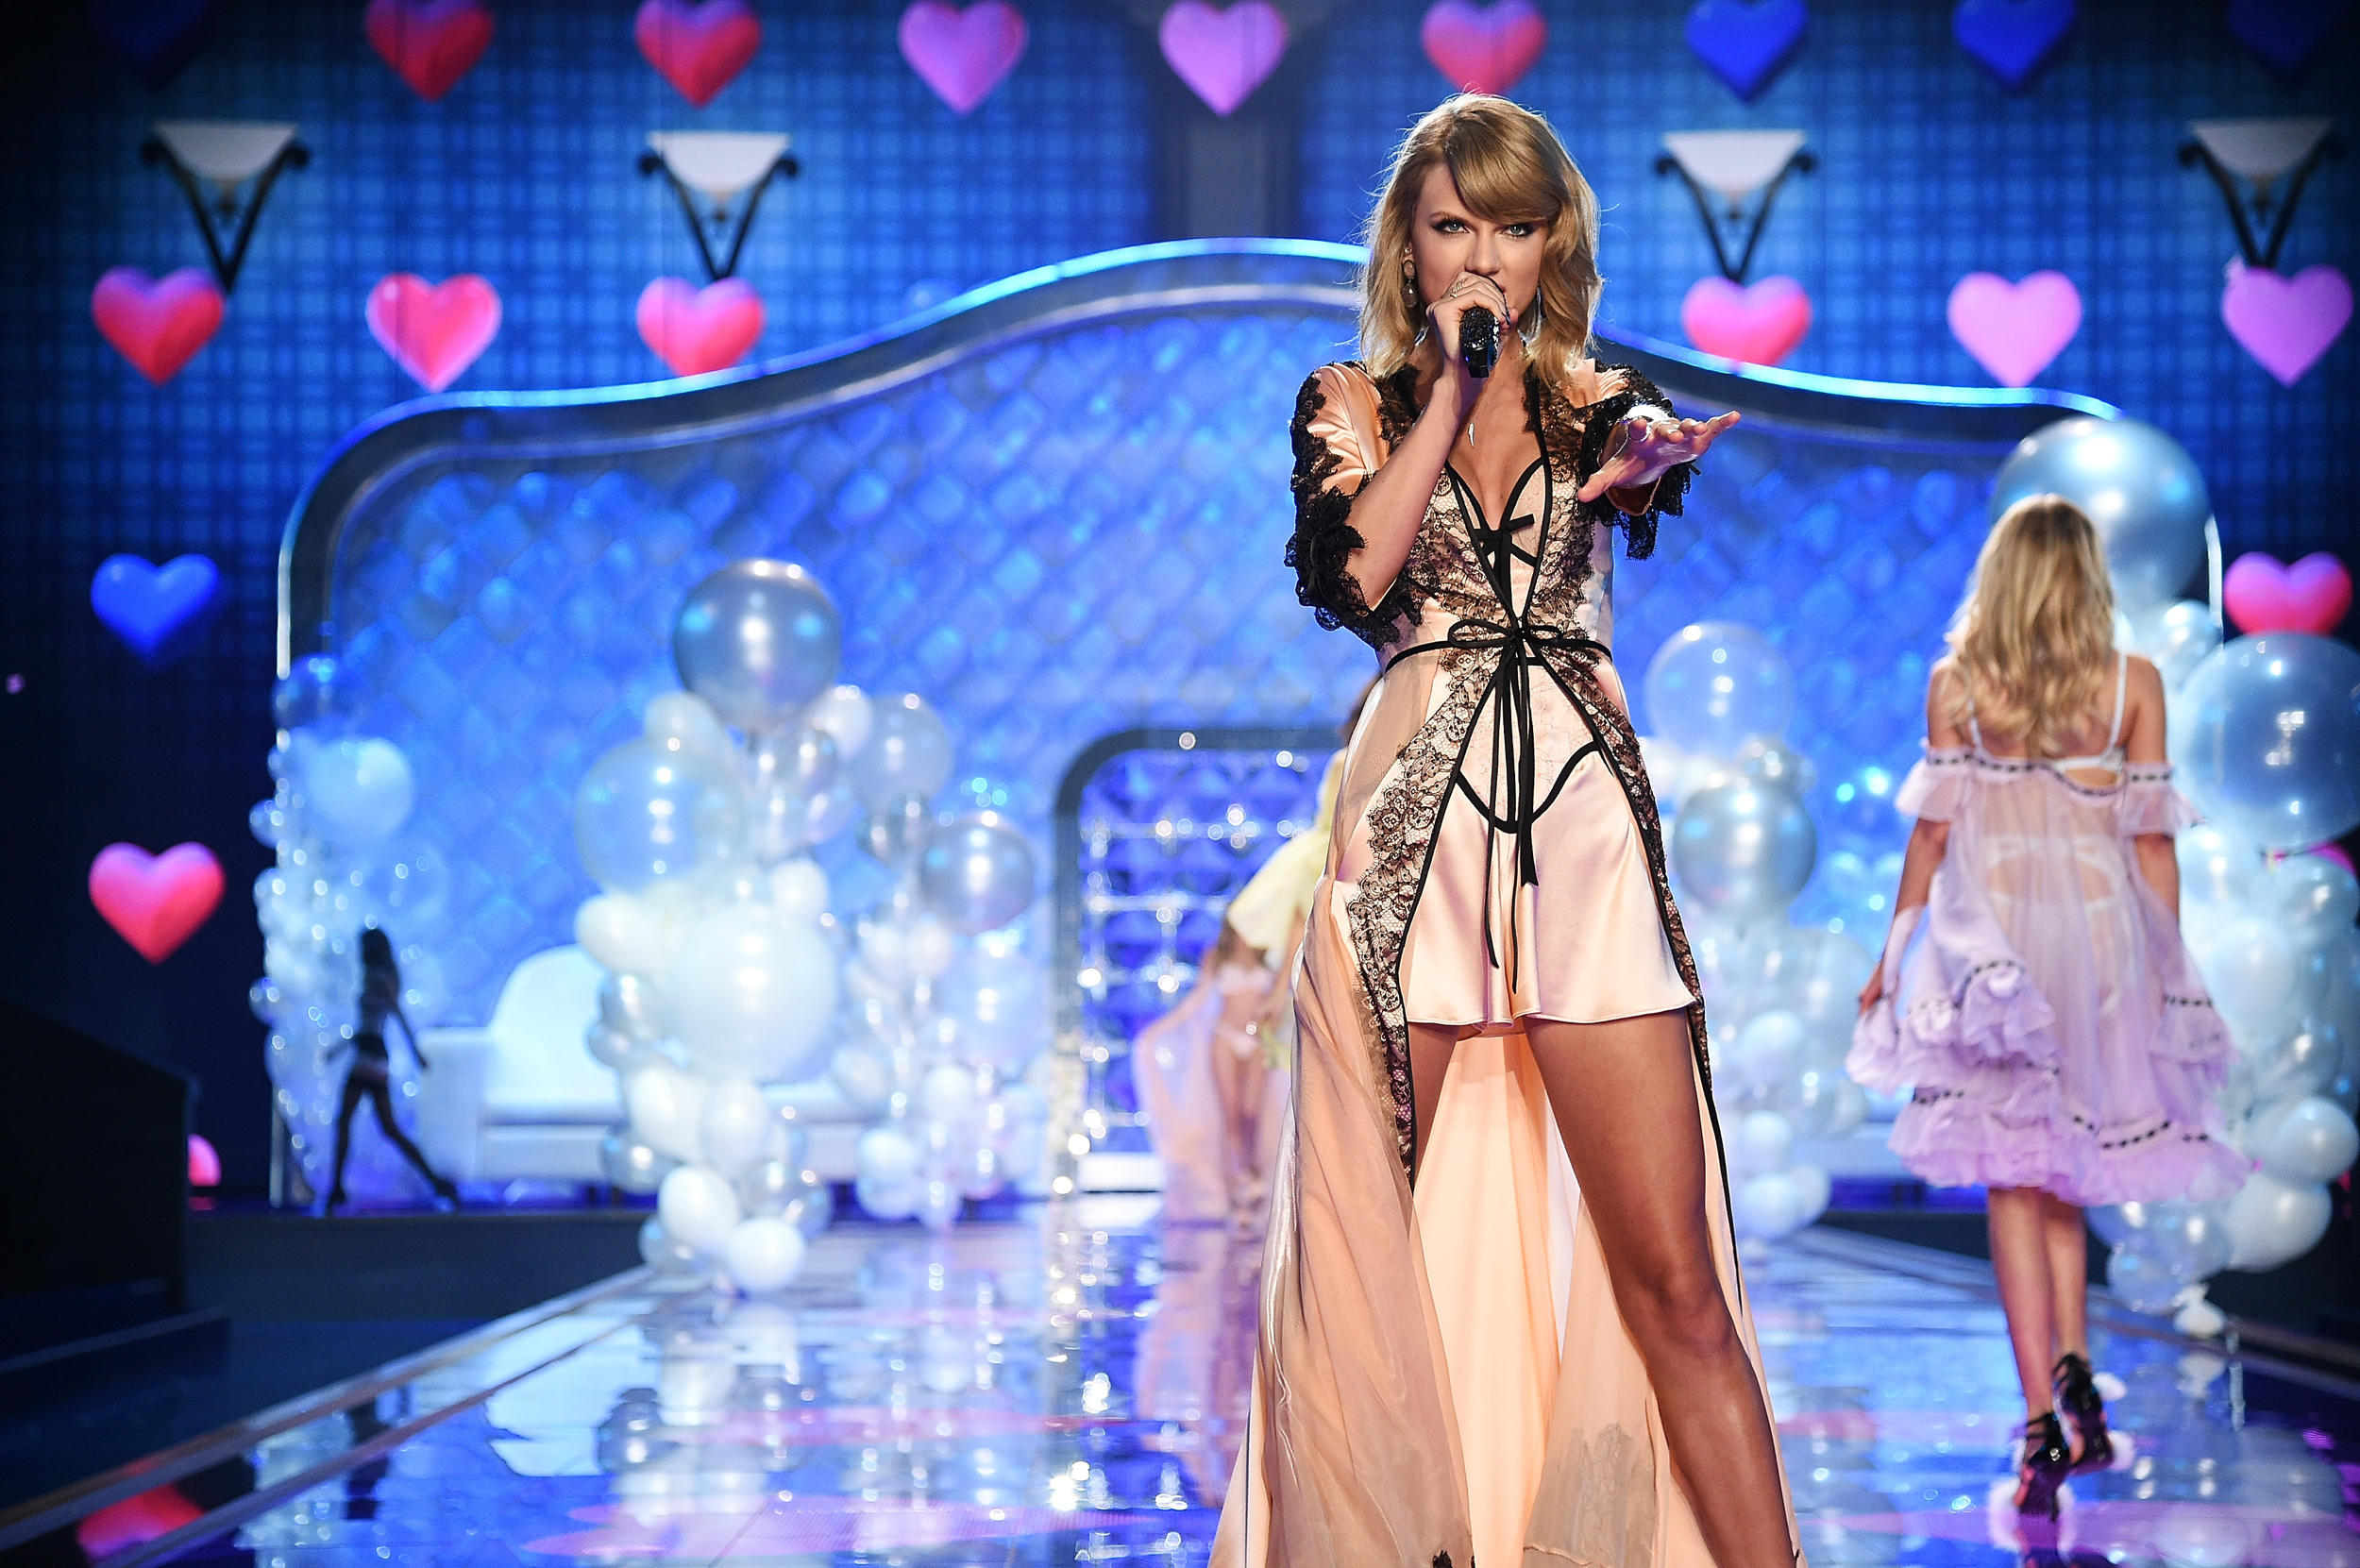 Victoria's Secret Fashion Show Music 2014 Taylor Balloons Hearts and